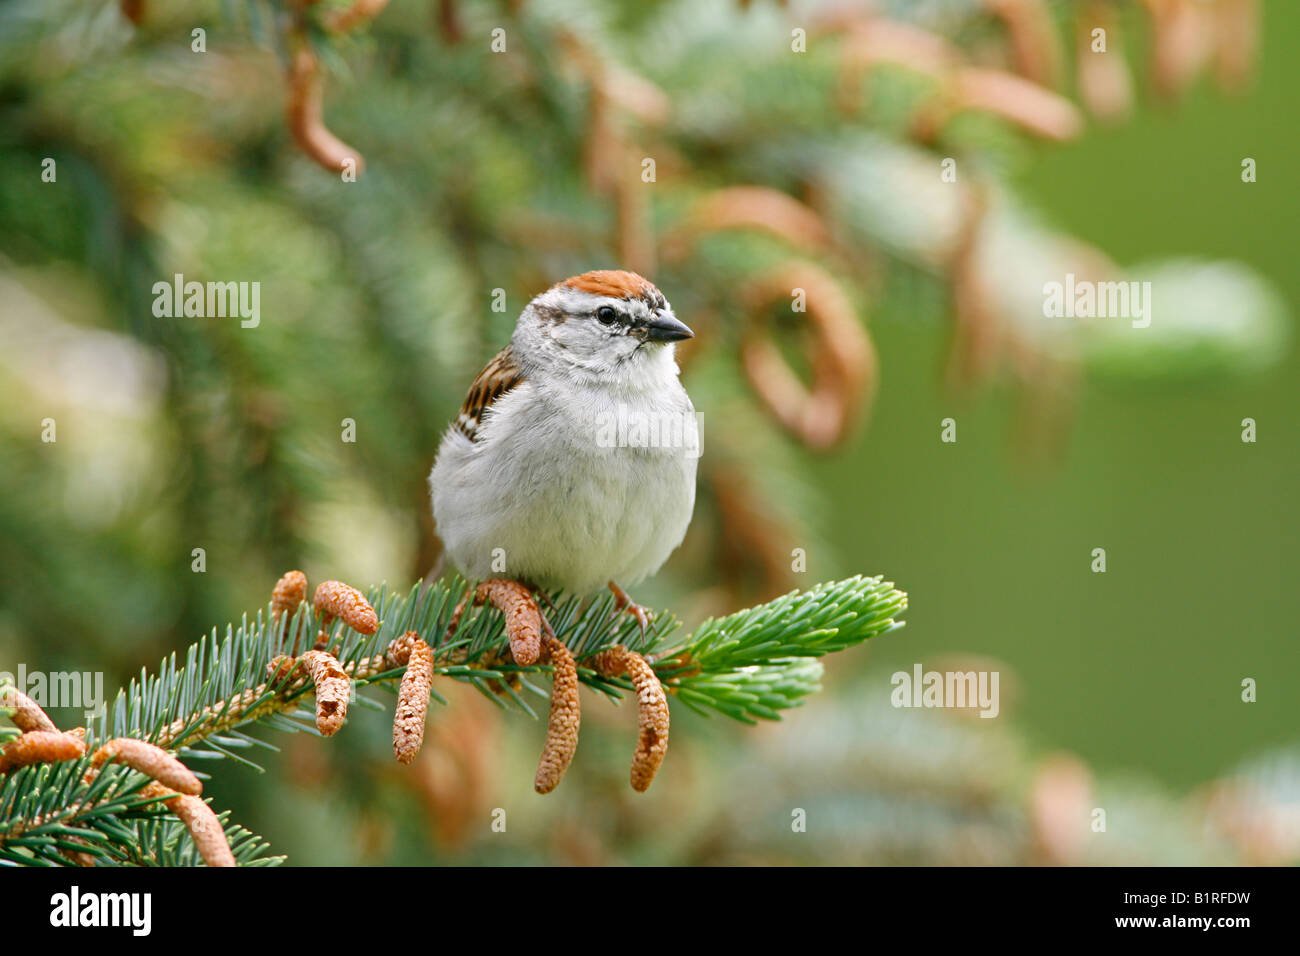 Chipping Sparrow perched in Spruce Tree - Stock Image